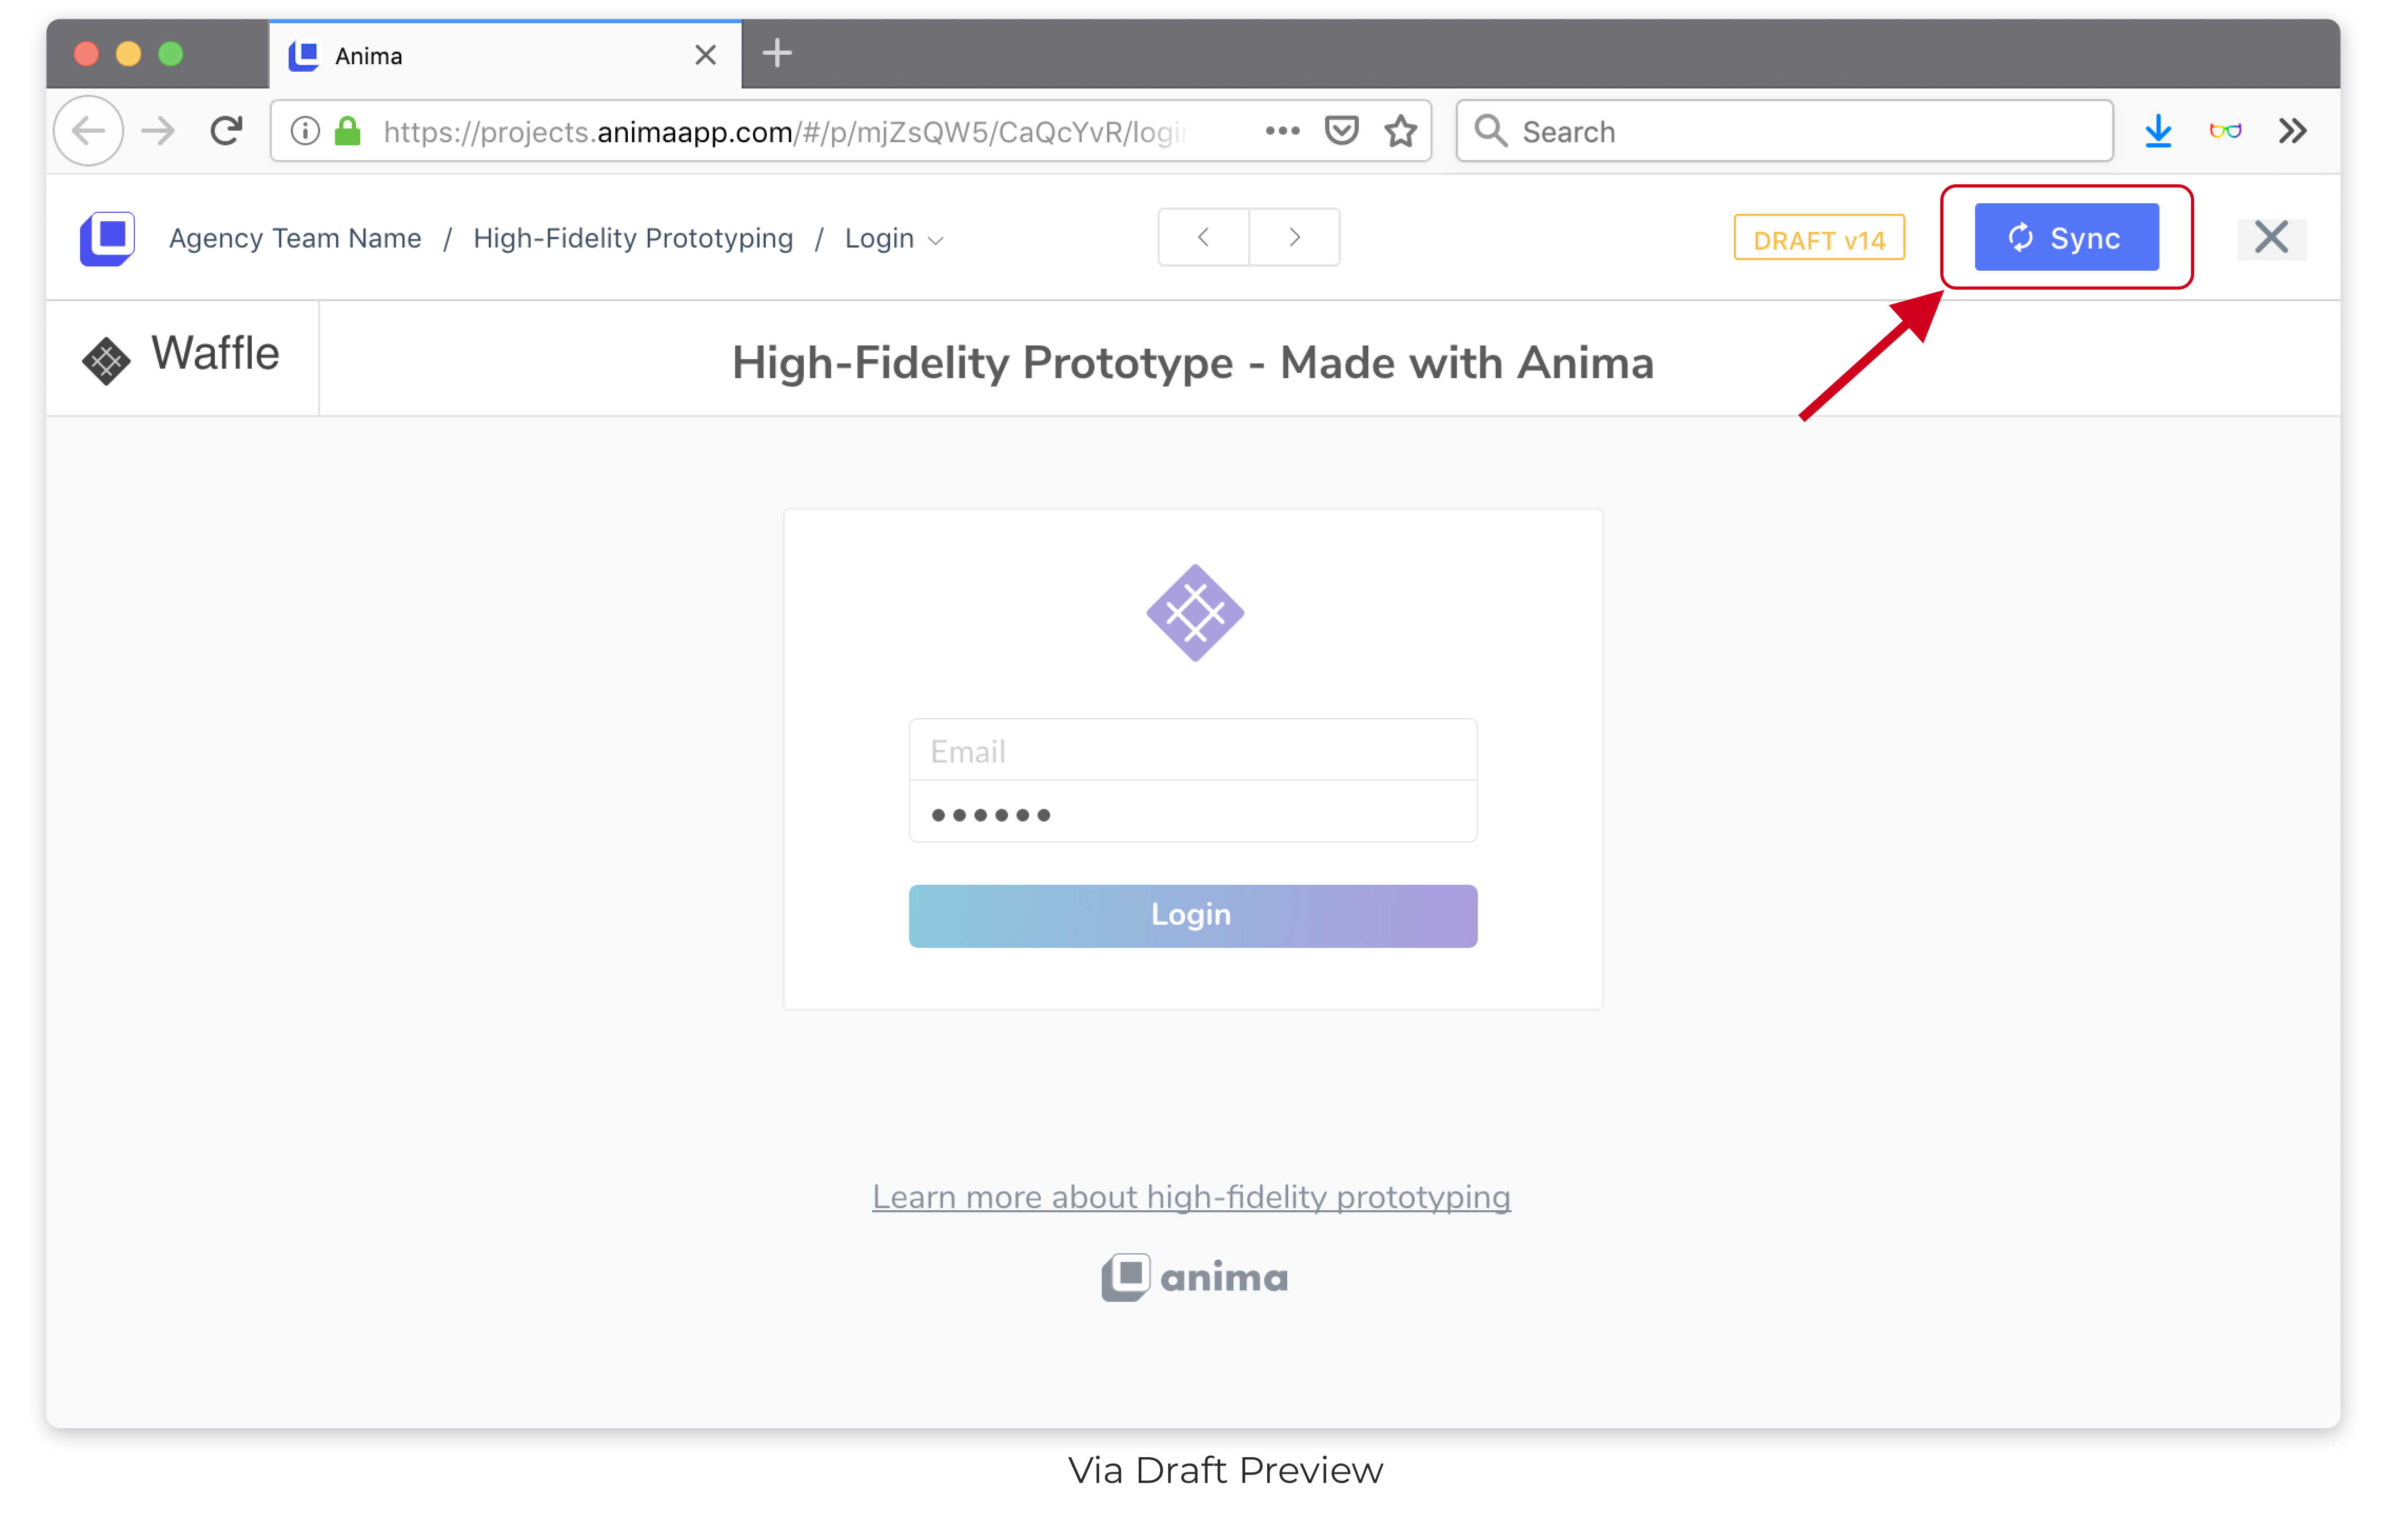 Sync Via Preview in Browser